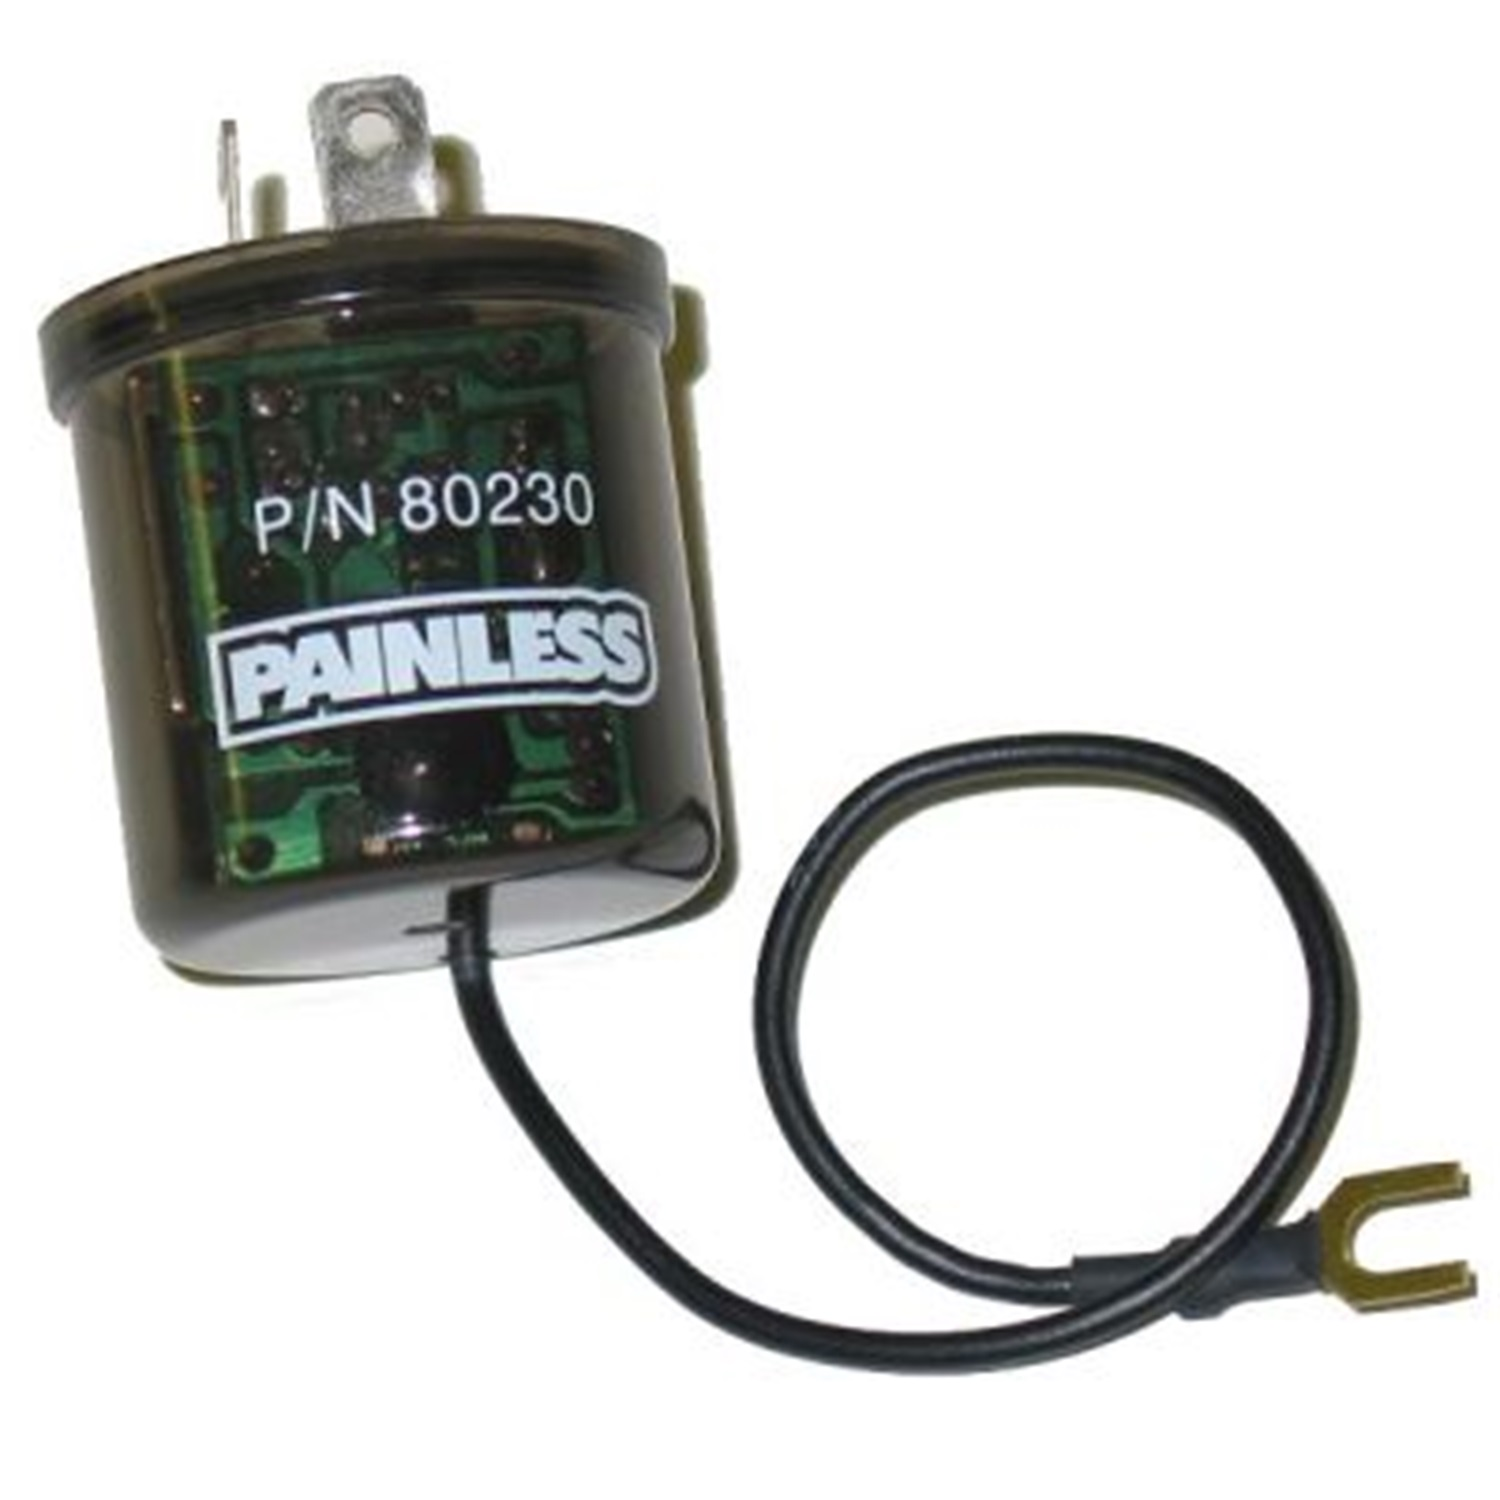 2 pin led flasher relay wiring diagram 2006 dodge magnum stereo painless 80230 autoplicity